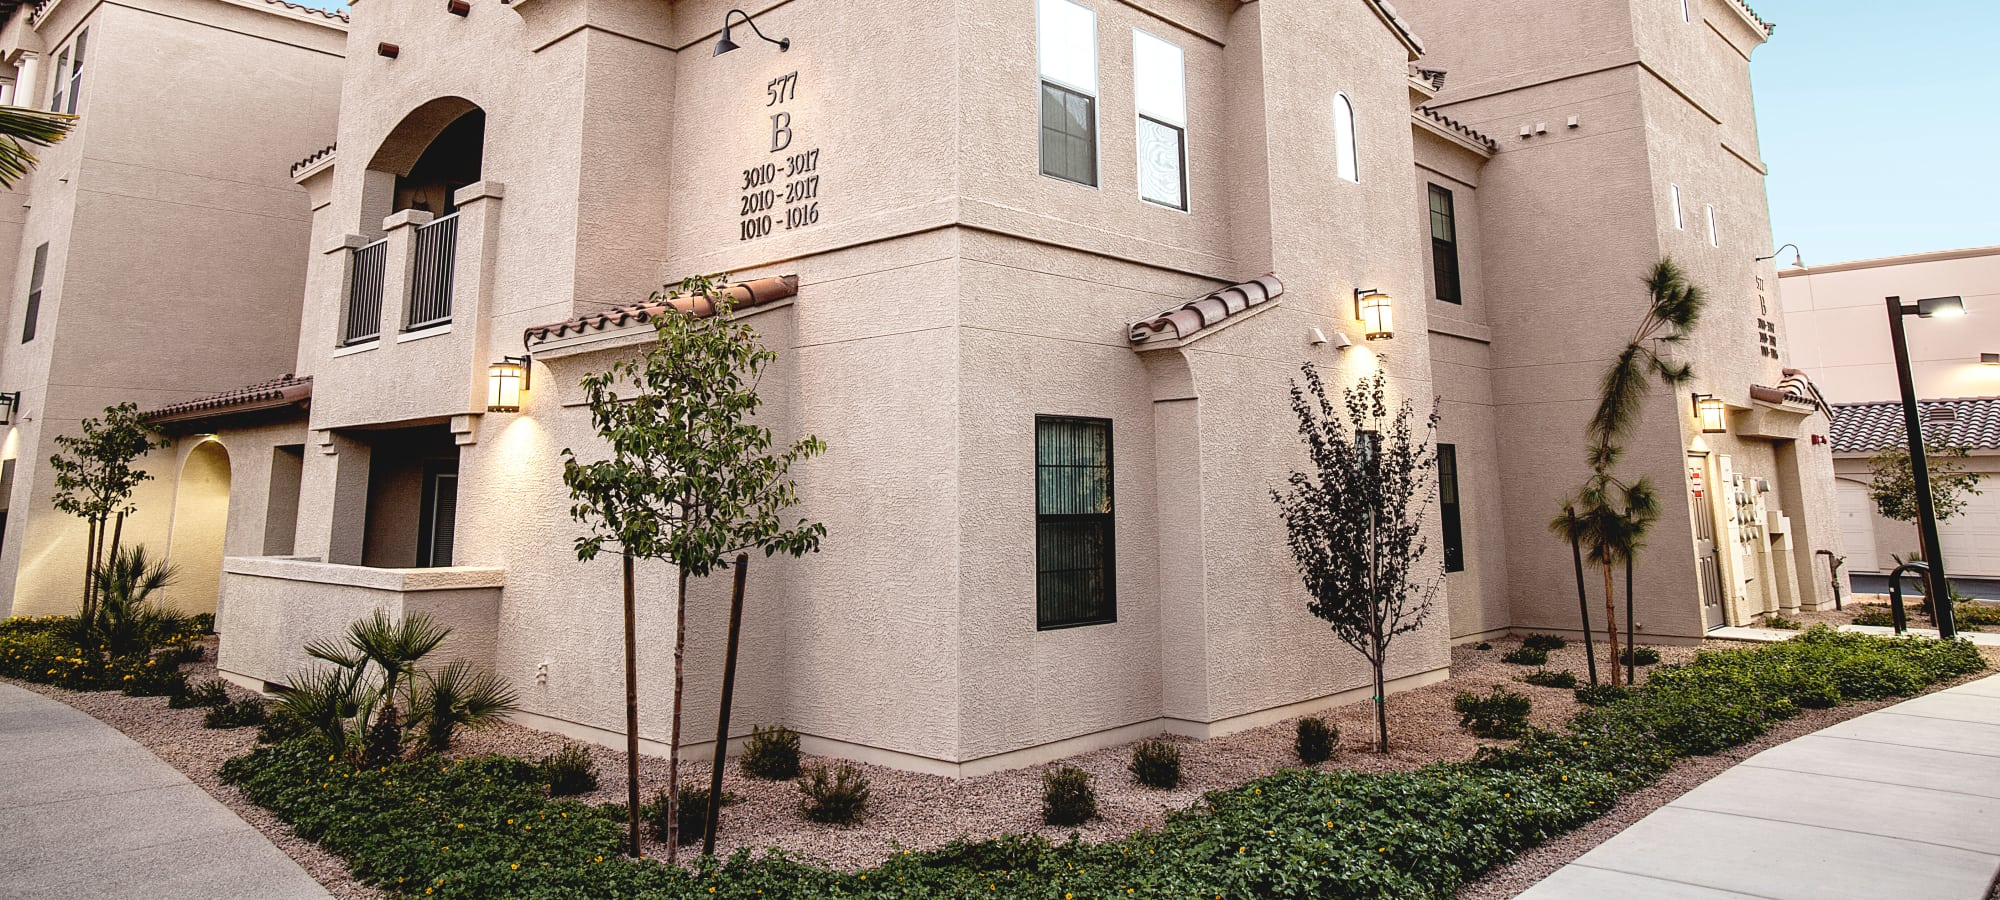 Exterior view of resident buildings at San Marquis in Tempe, Arizona